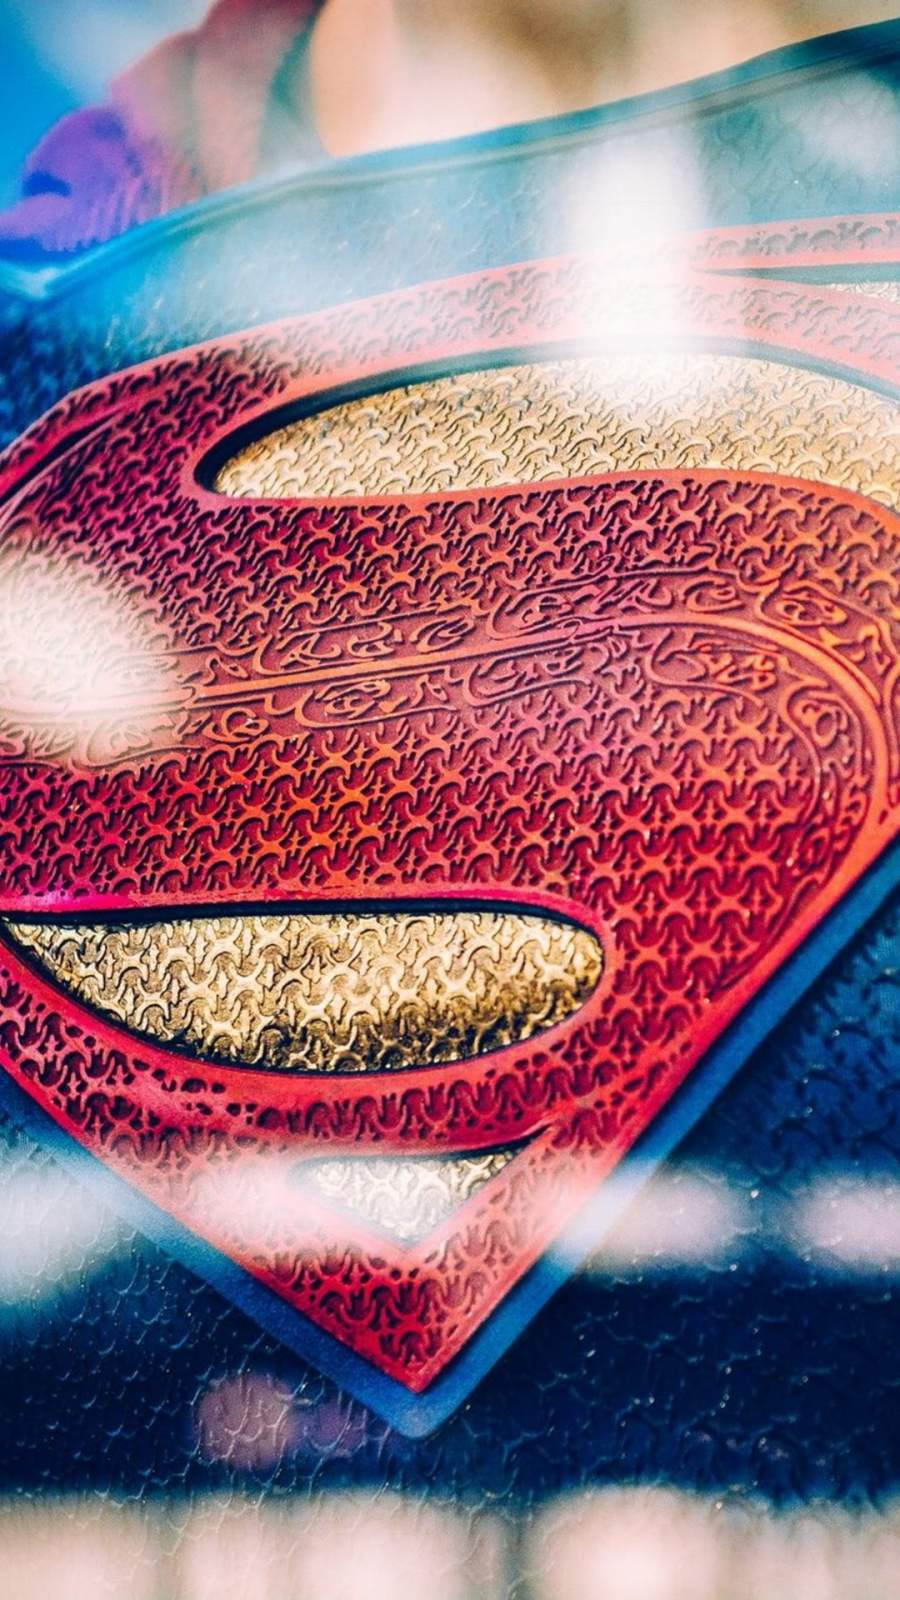 Superman a Hope iPhone Wallpaper